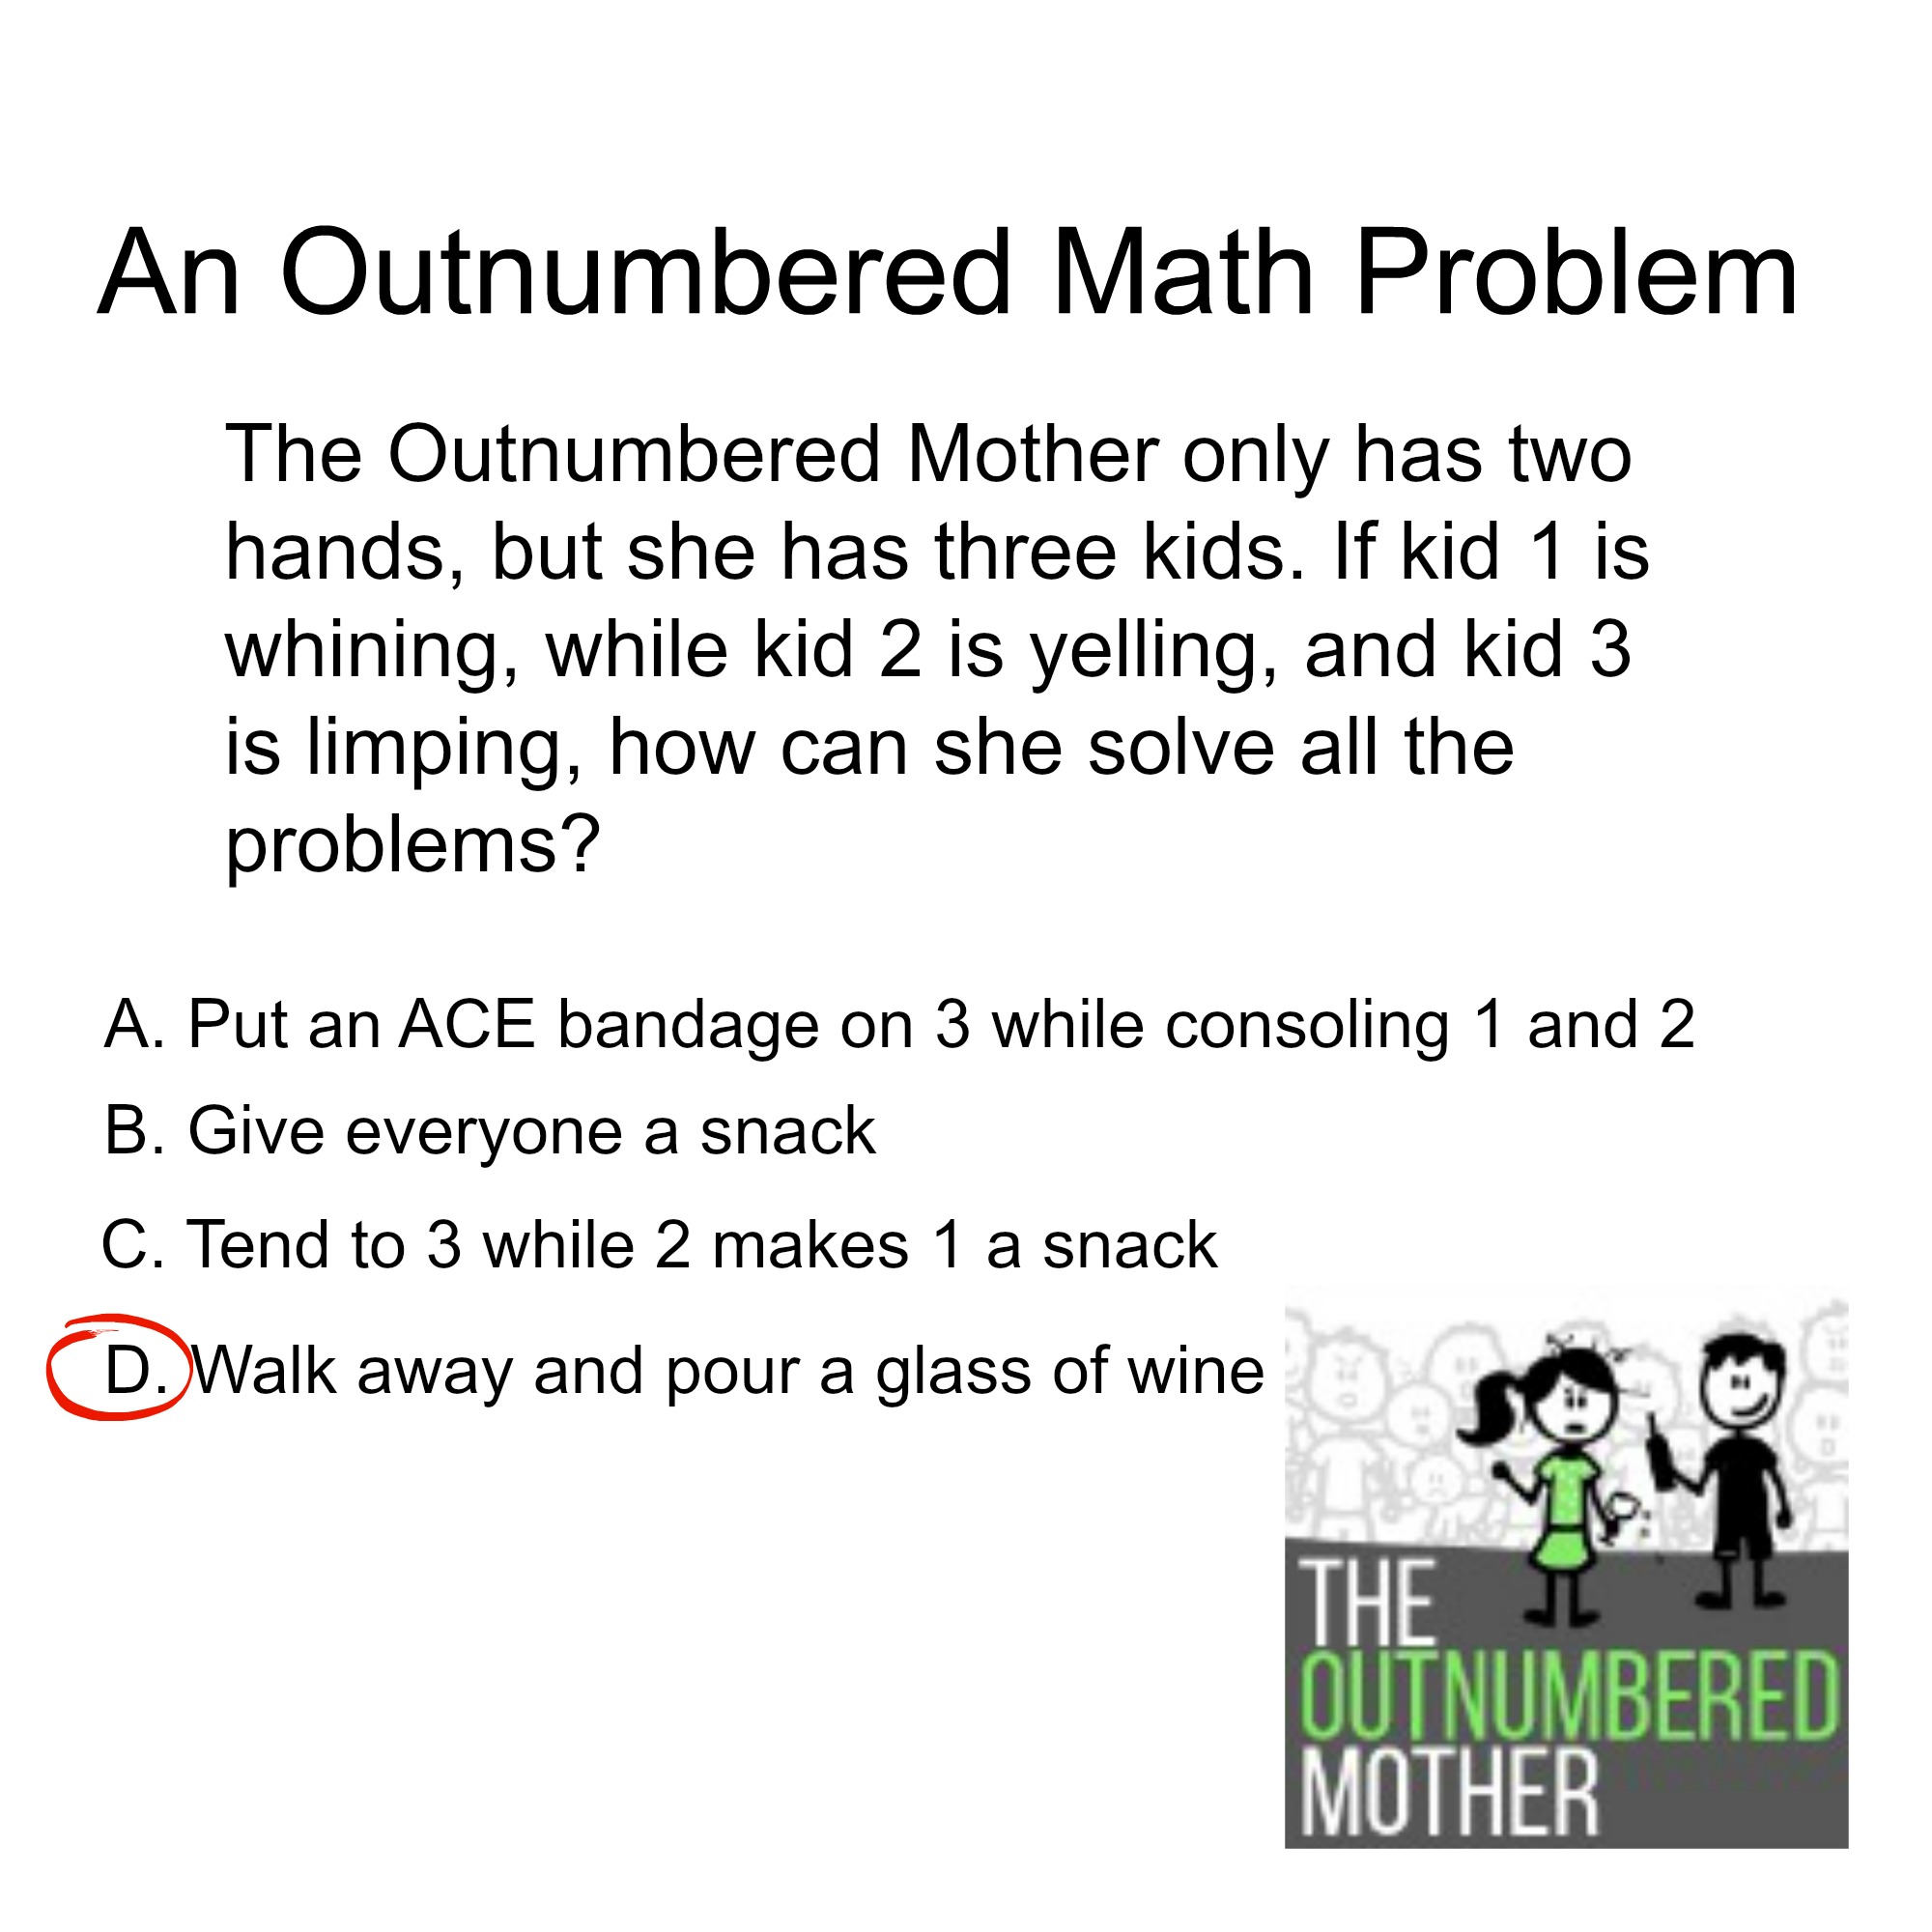 difficult math problems Algebraic word problems e-mail: jdancis@mathumdedu 2 nowtheproblemisthattheunits donot matchup wehaveamountofwork=4hours but workcannot equalhours.